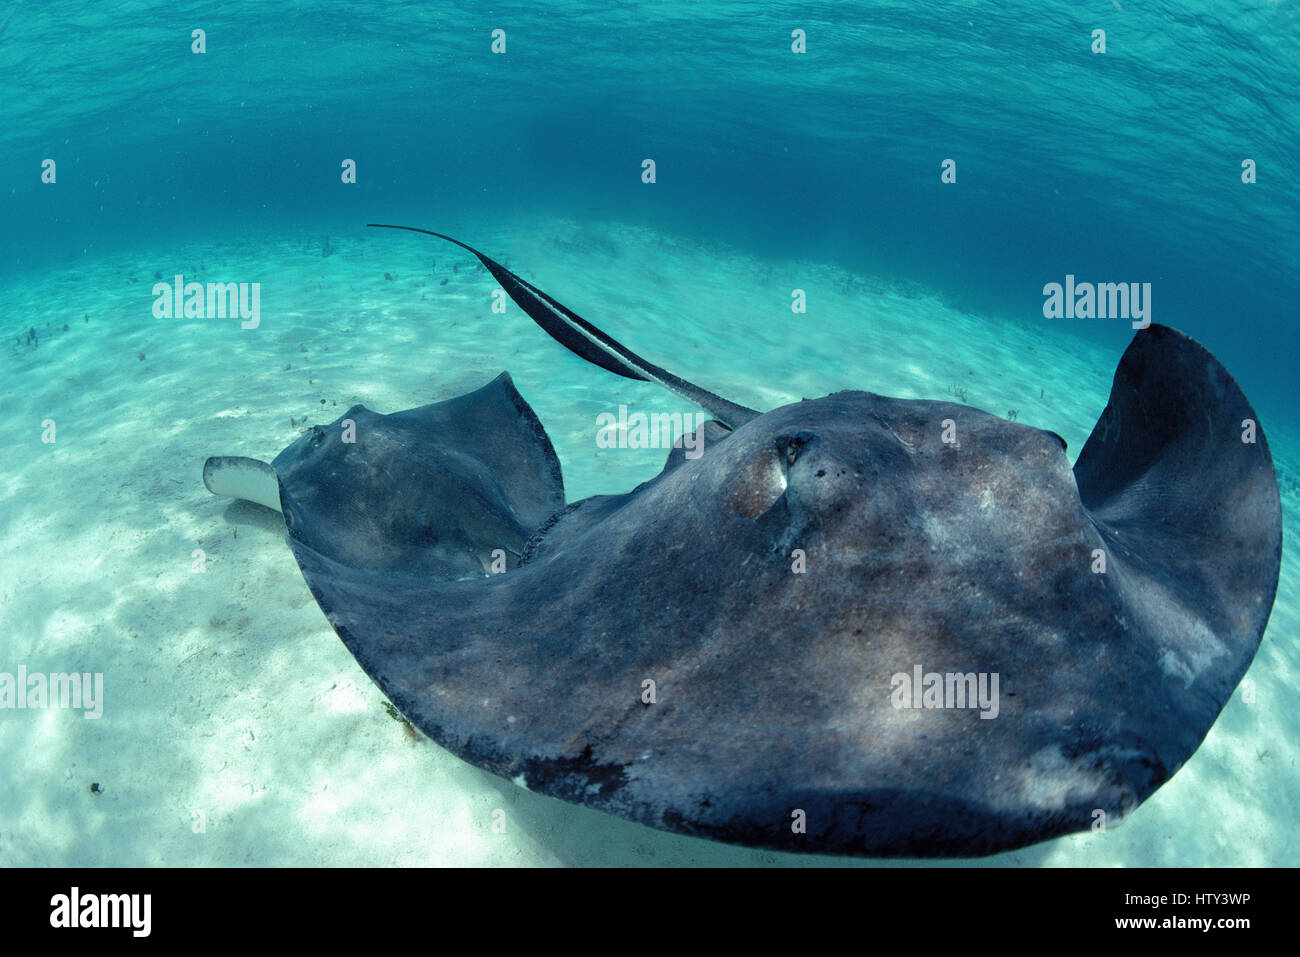 Southern Stingrays (Dasyatis americana) at 'Stingray City', a popular tourist site, Bahamas - Caribbean - Stock Image